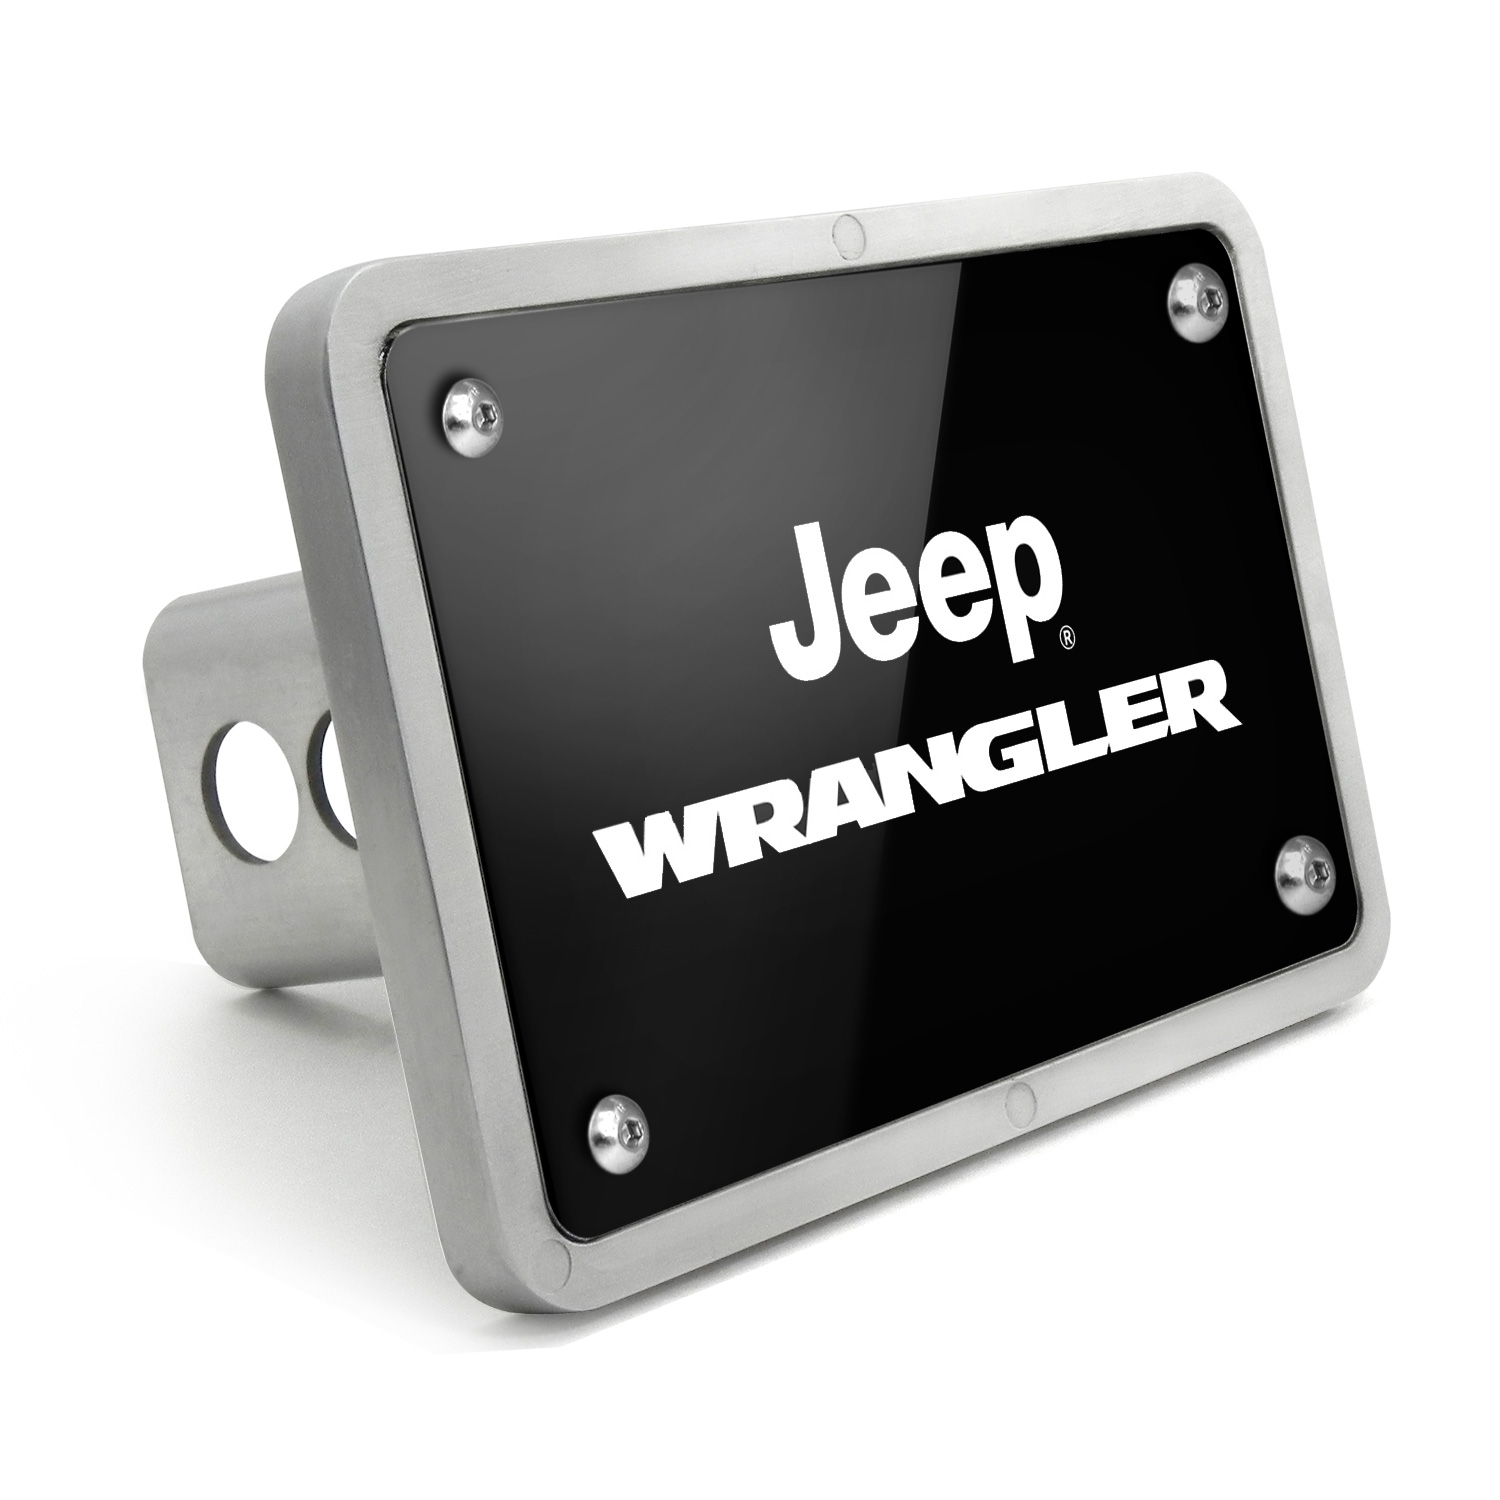 Jeep Wrangler UV Graphic Black Billet Aluminum 2 inch Tow Hitch Cover